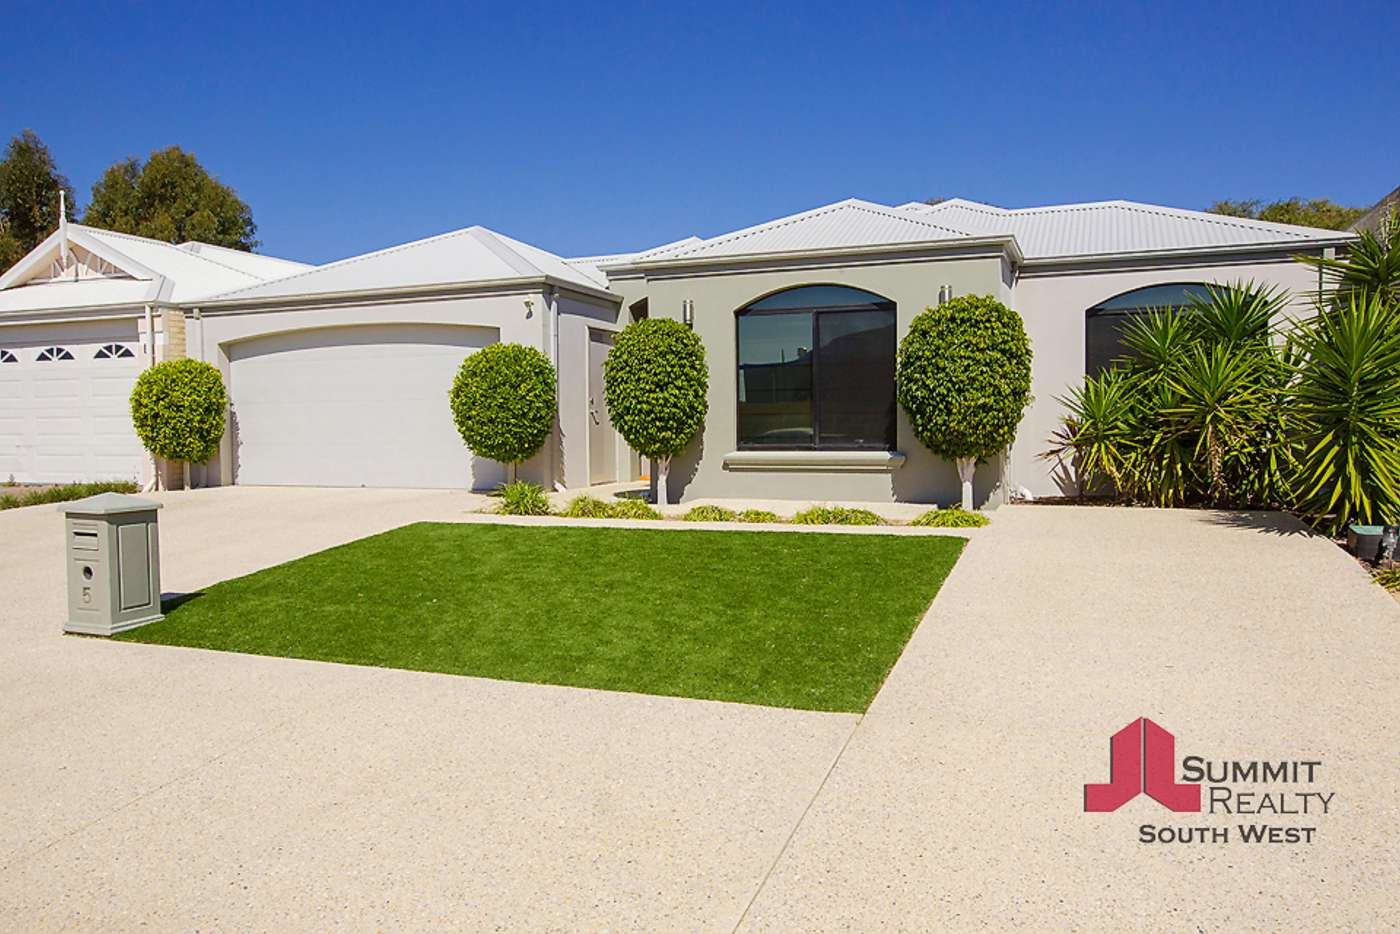 Main view of Homely house listing, 5 Broadway, Pelican Point WA 6230